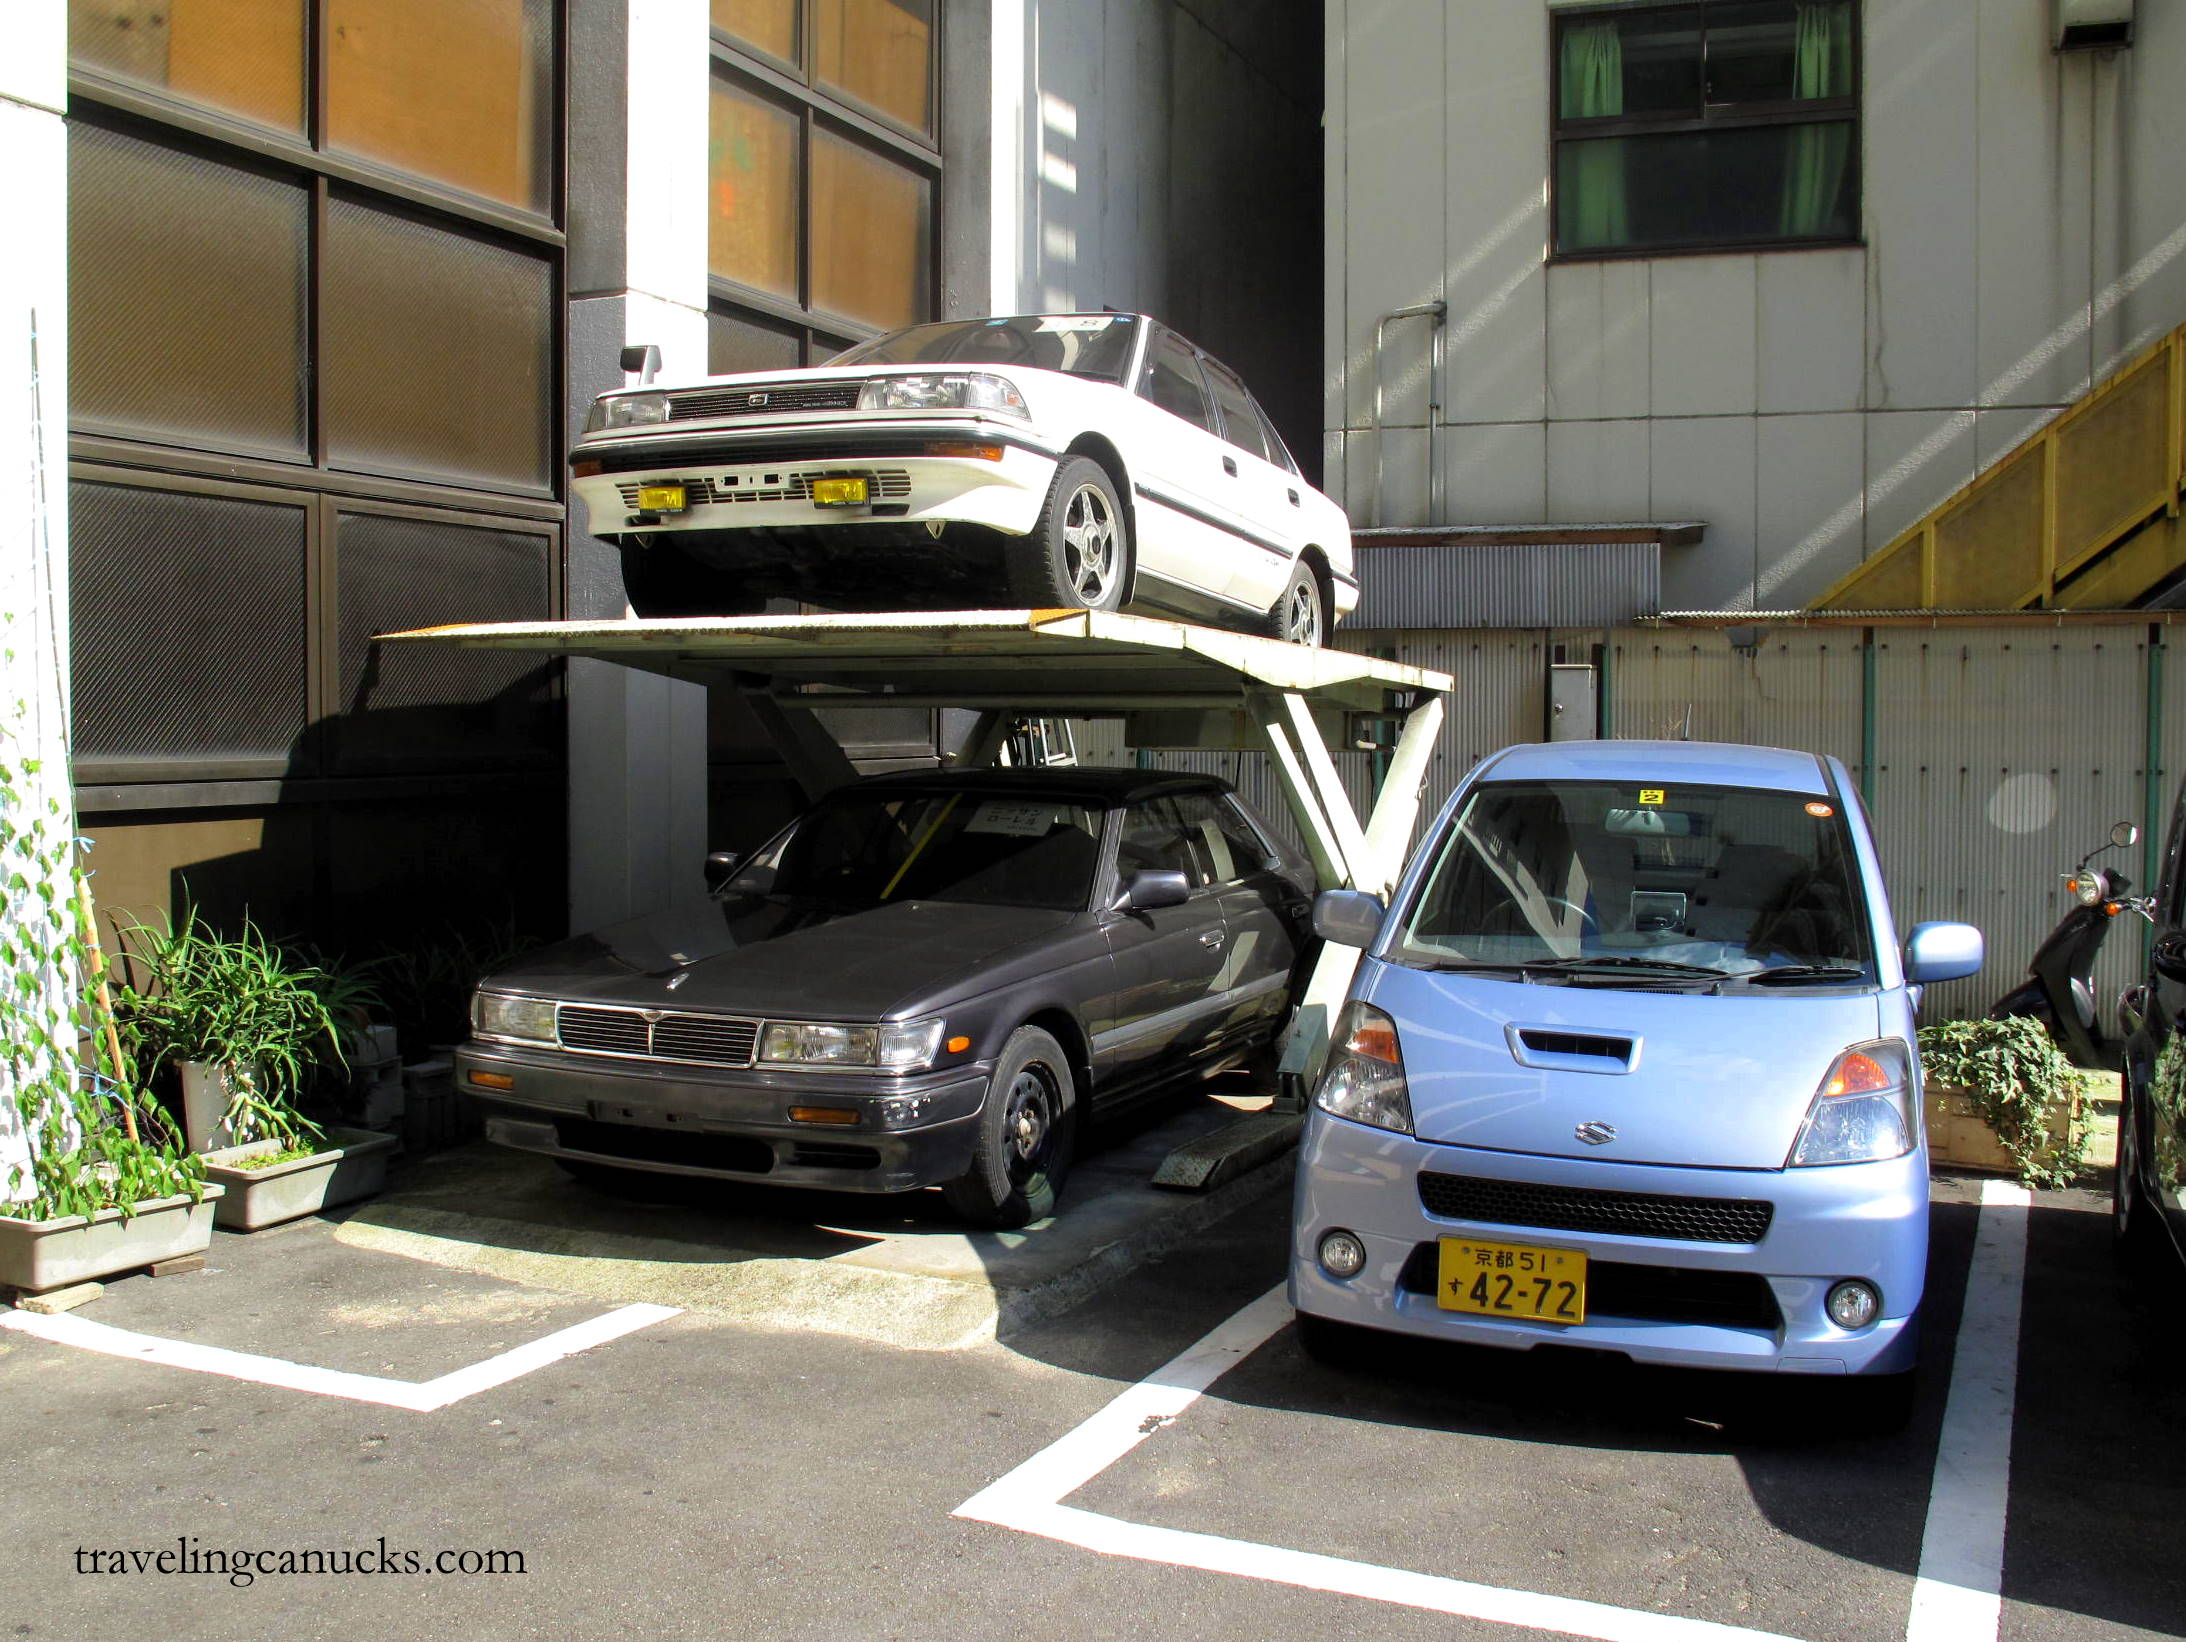 The art of parking tokyo style japangasm for Parking solutions for small spaces